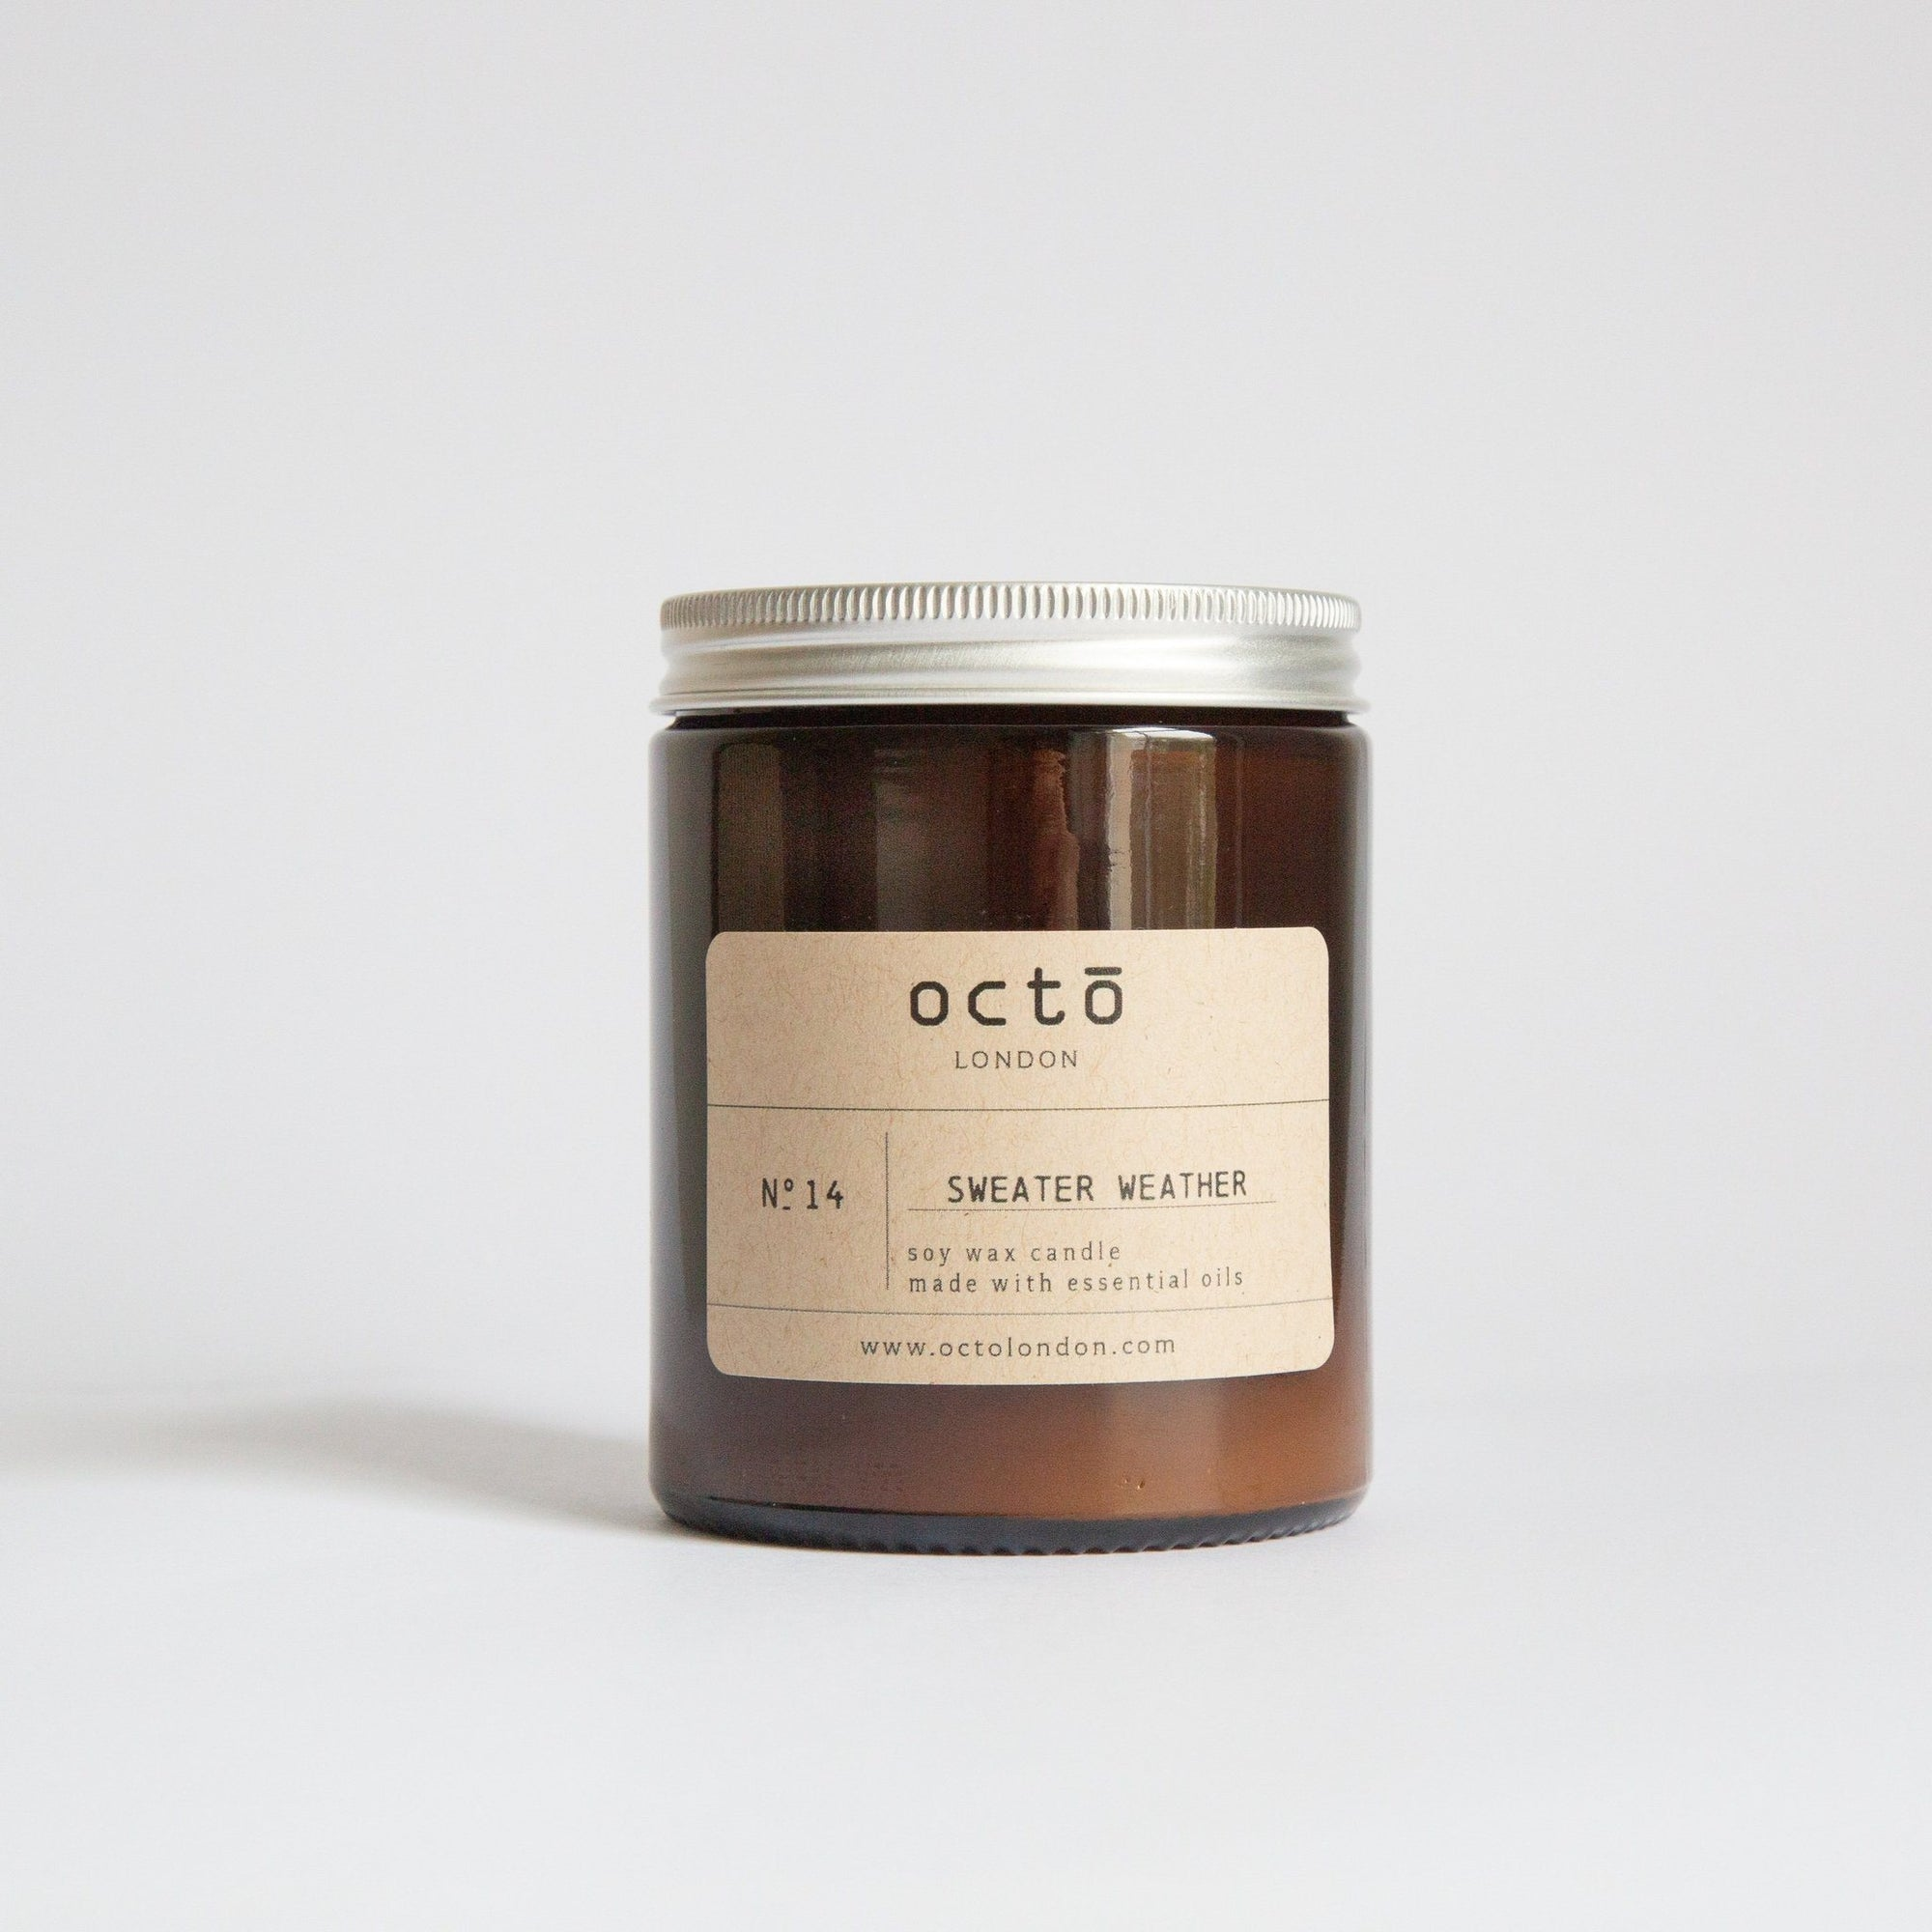 Sweather Weather Candle Kerzen Octo London - Genuine Selection